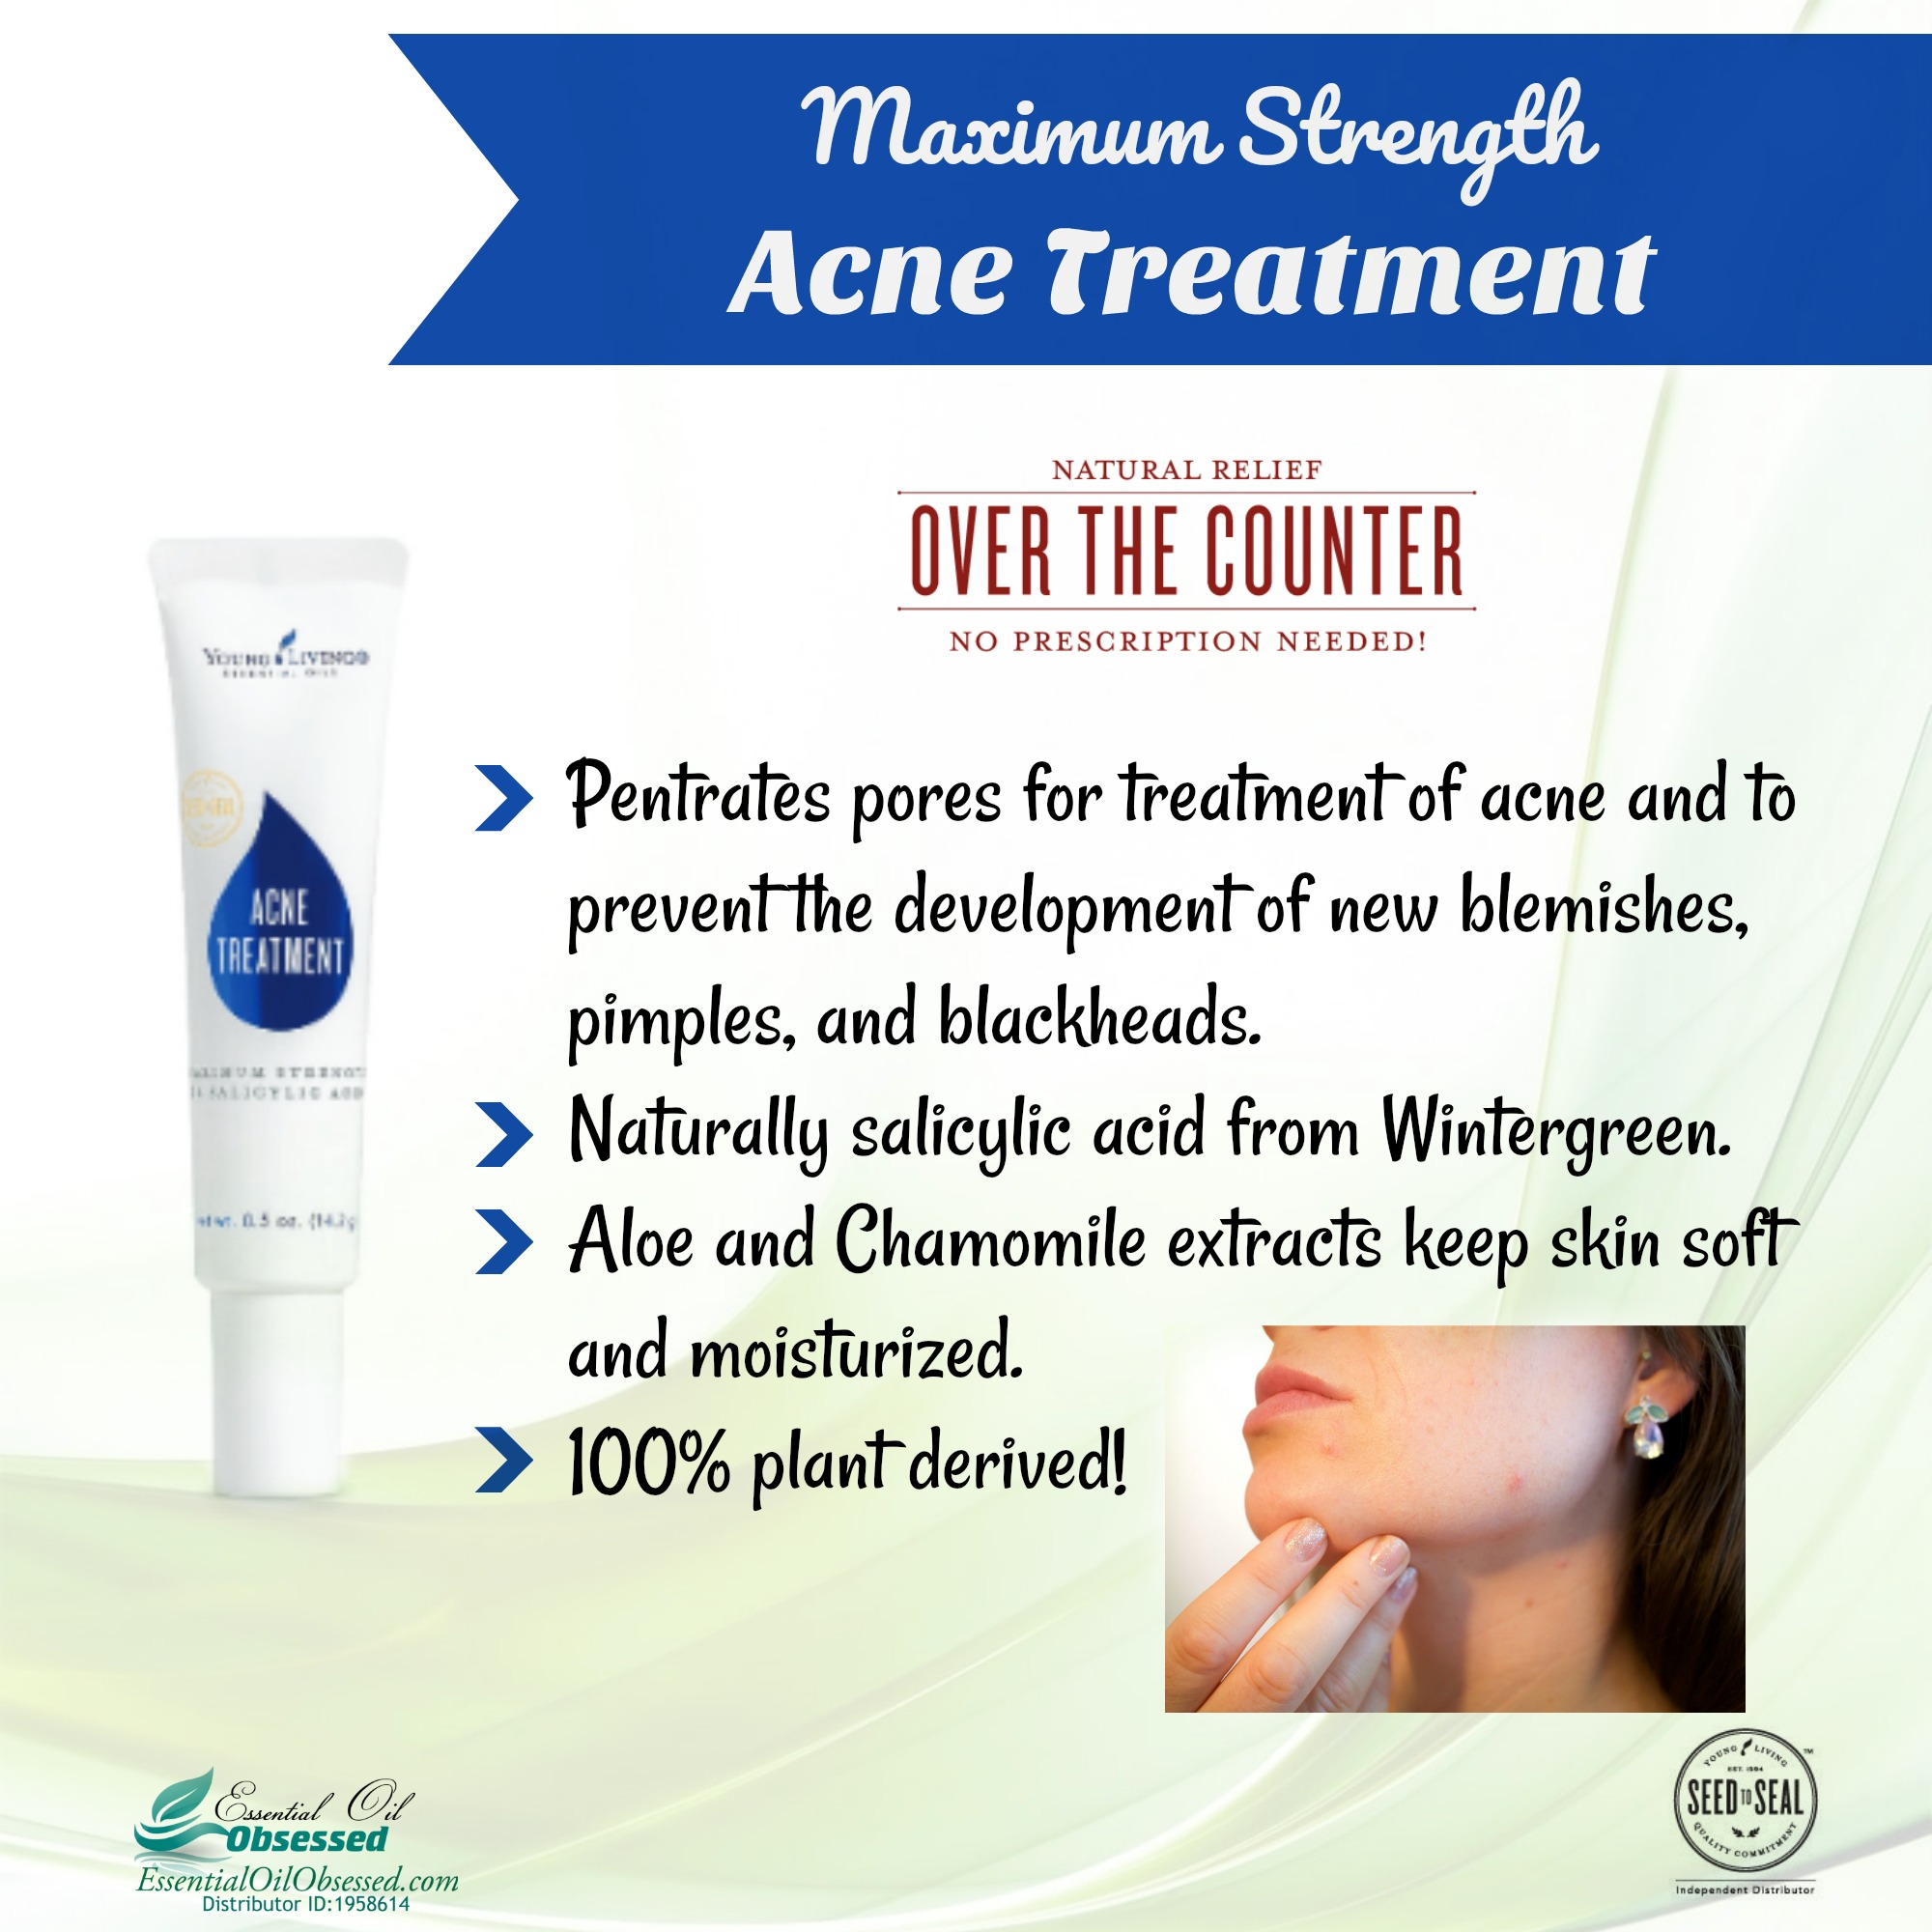 Maximum Strength Acne Treatment by Young living